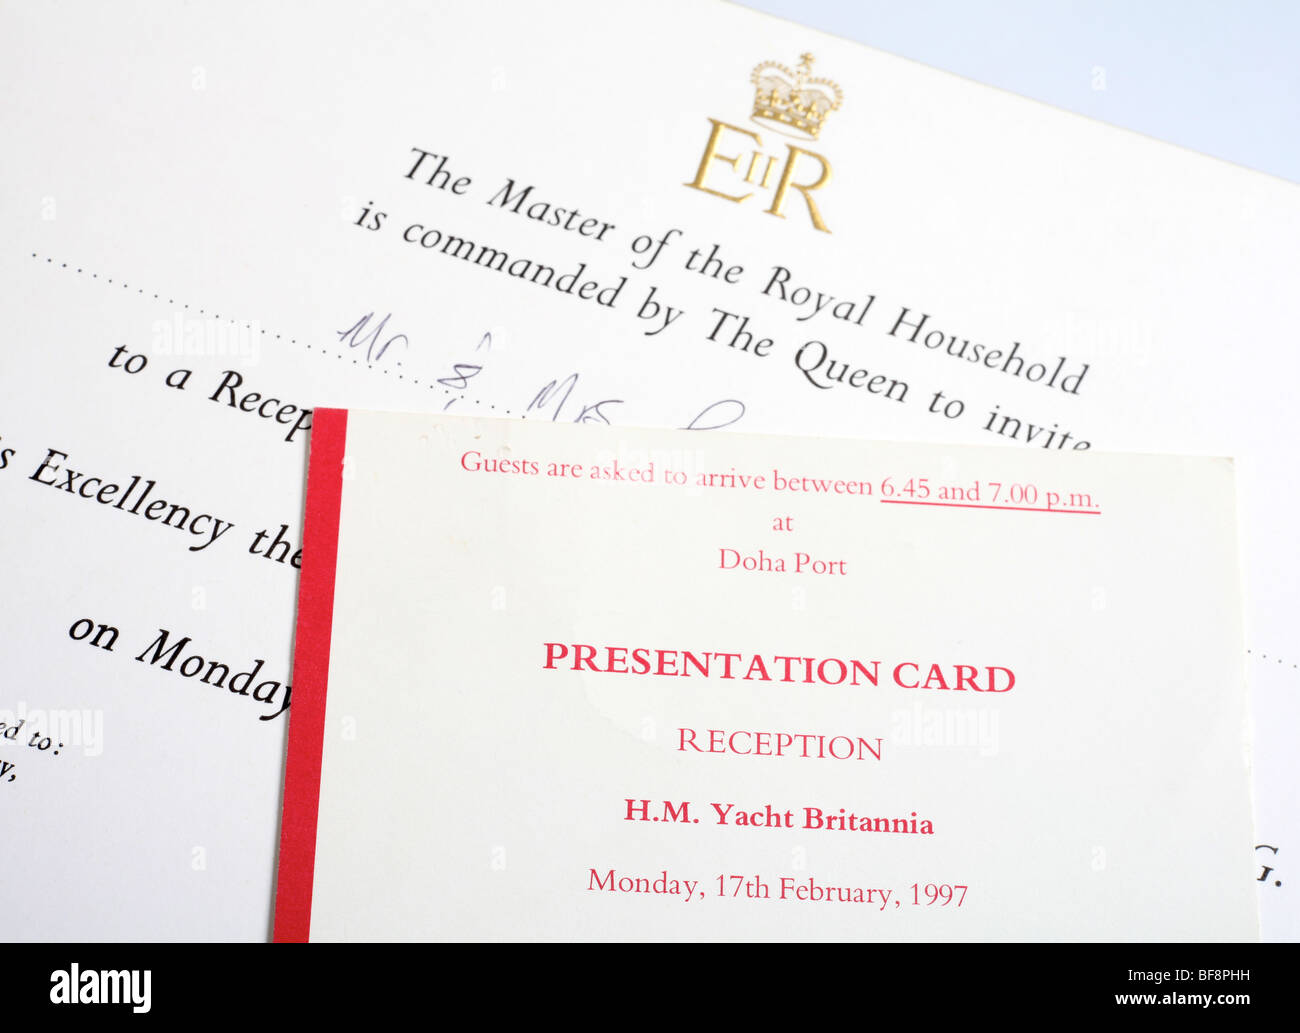 An invitation card to a reception on board the last british royal an invitation card to a reception on board the last british royal yacht hm yacht britannia at doha port qatar on february 17 stopboris Image collections